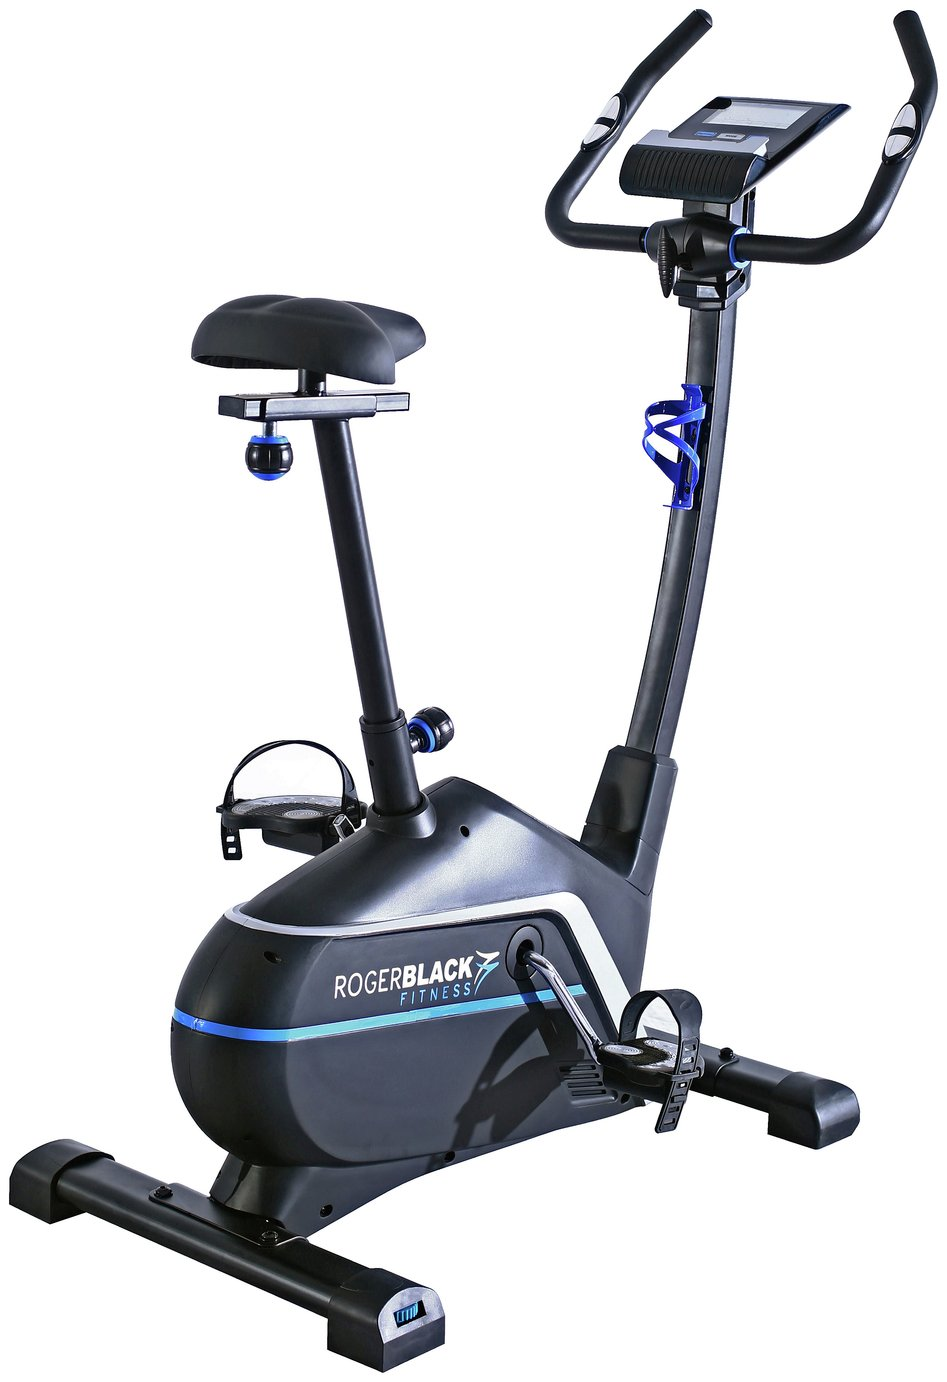 Roger Black - Gold Magnetic Exercise Bike lowest price